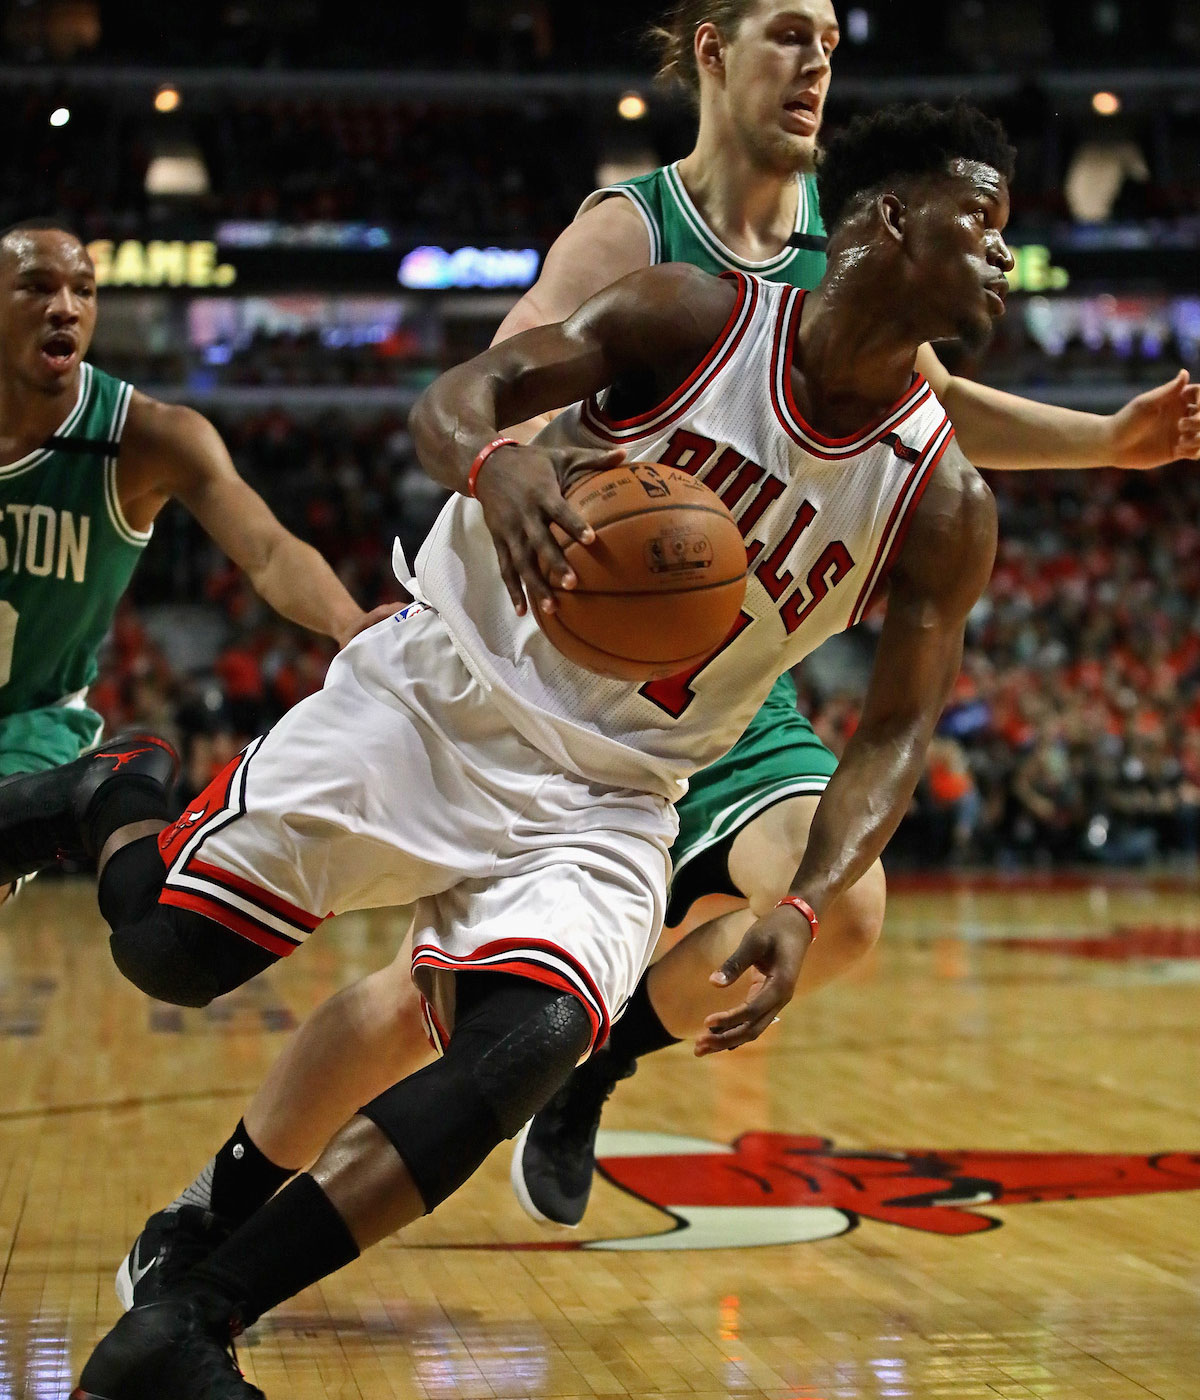 Jimmy Butler #21 of the Chicago Bulls drives around Kelly Olynyk #41 of the Boston Celtics